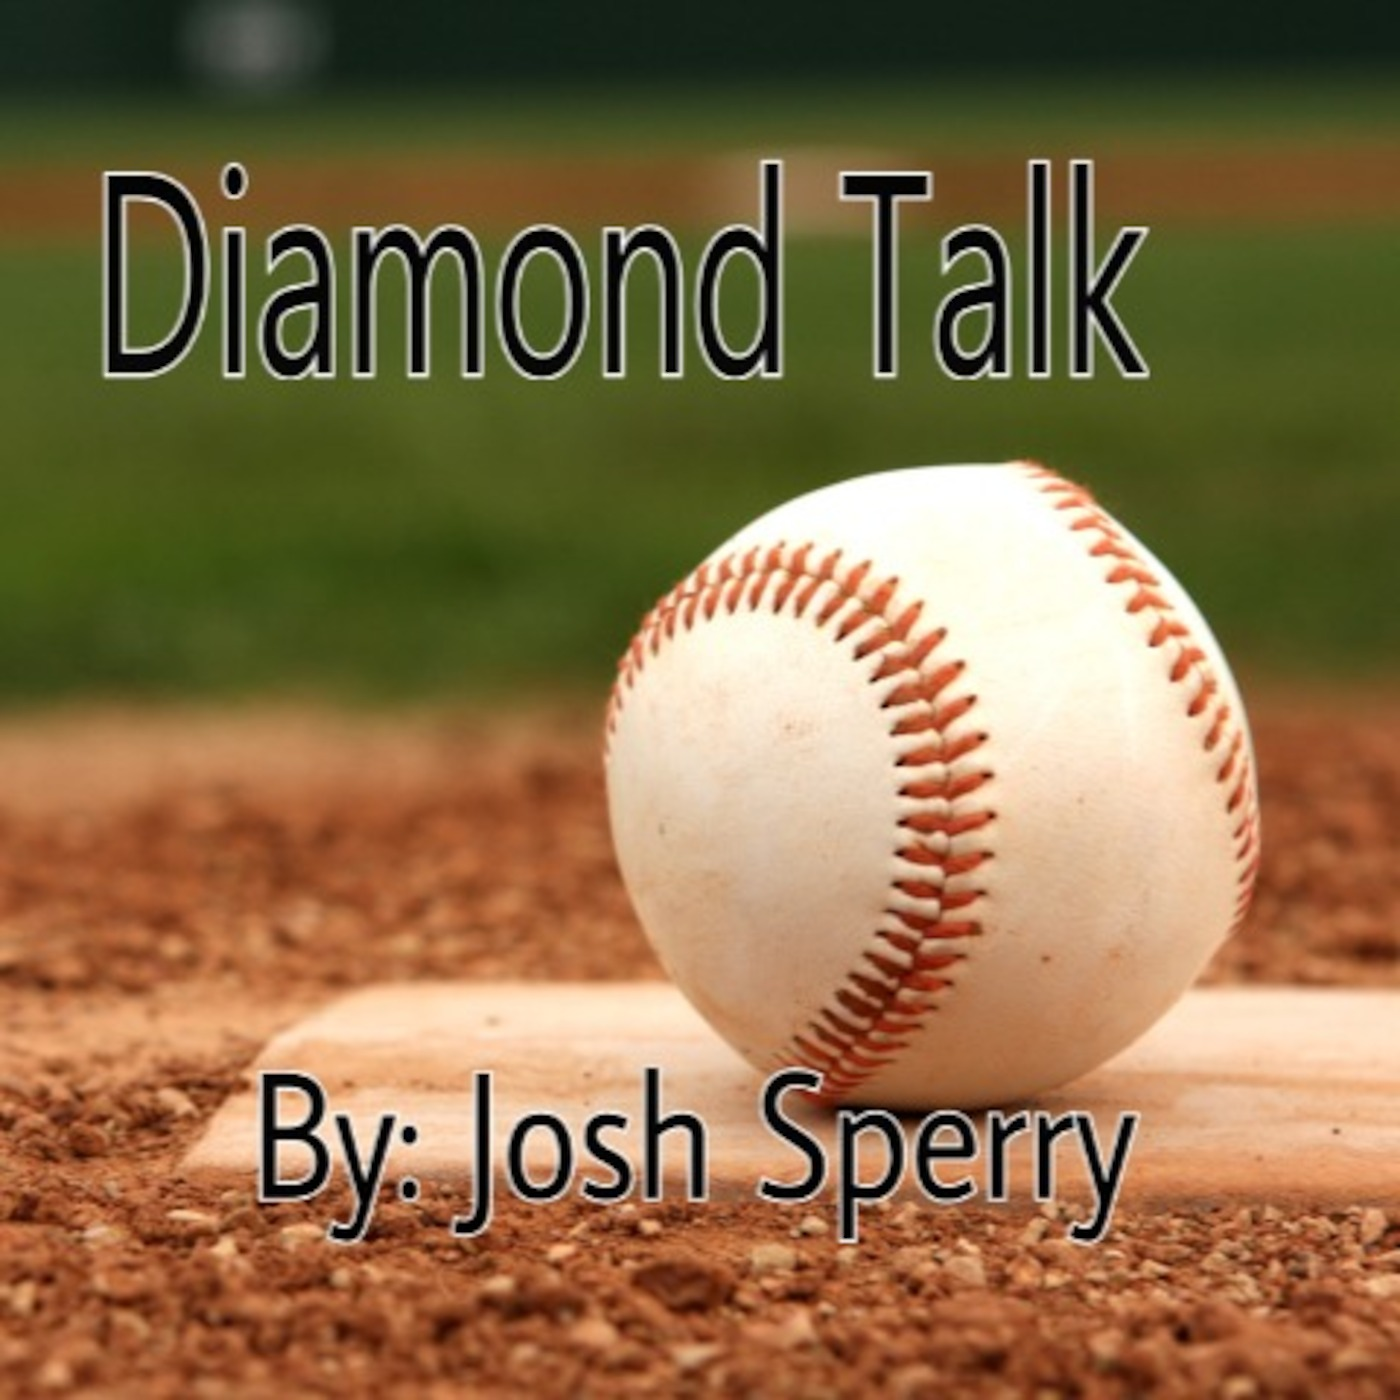 Diamond Talk